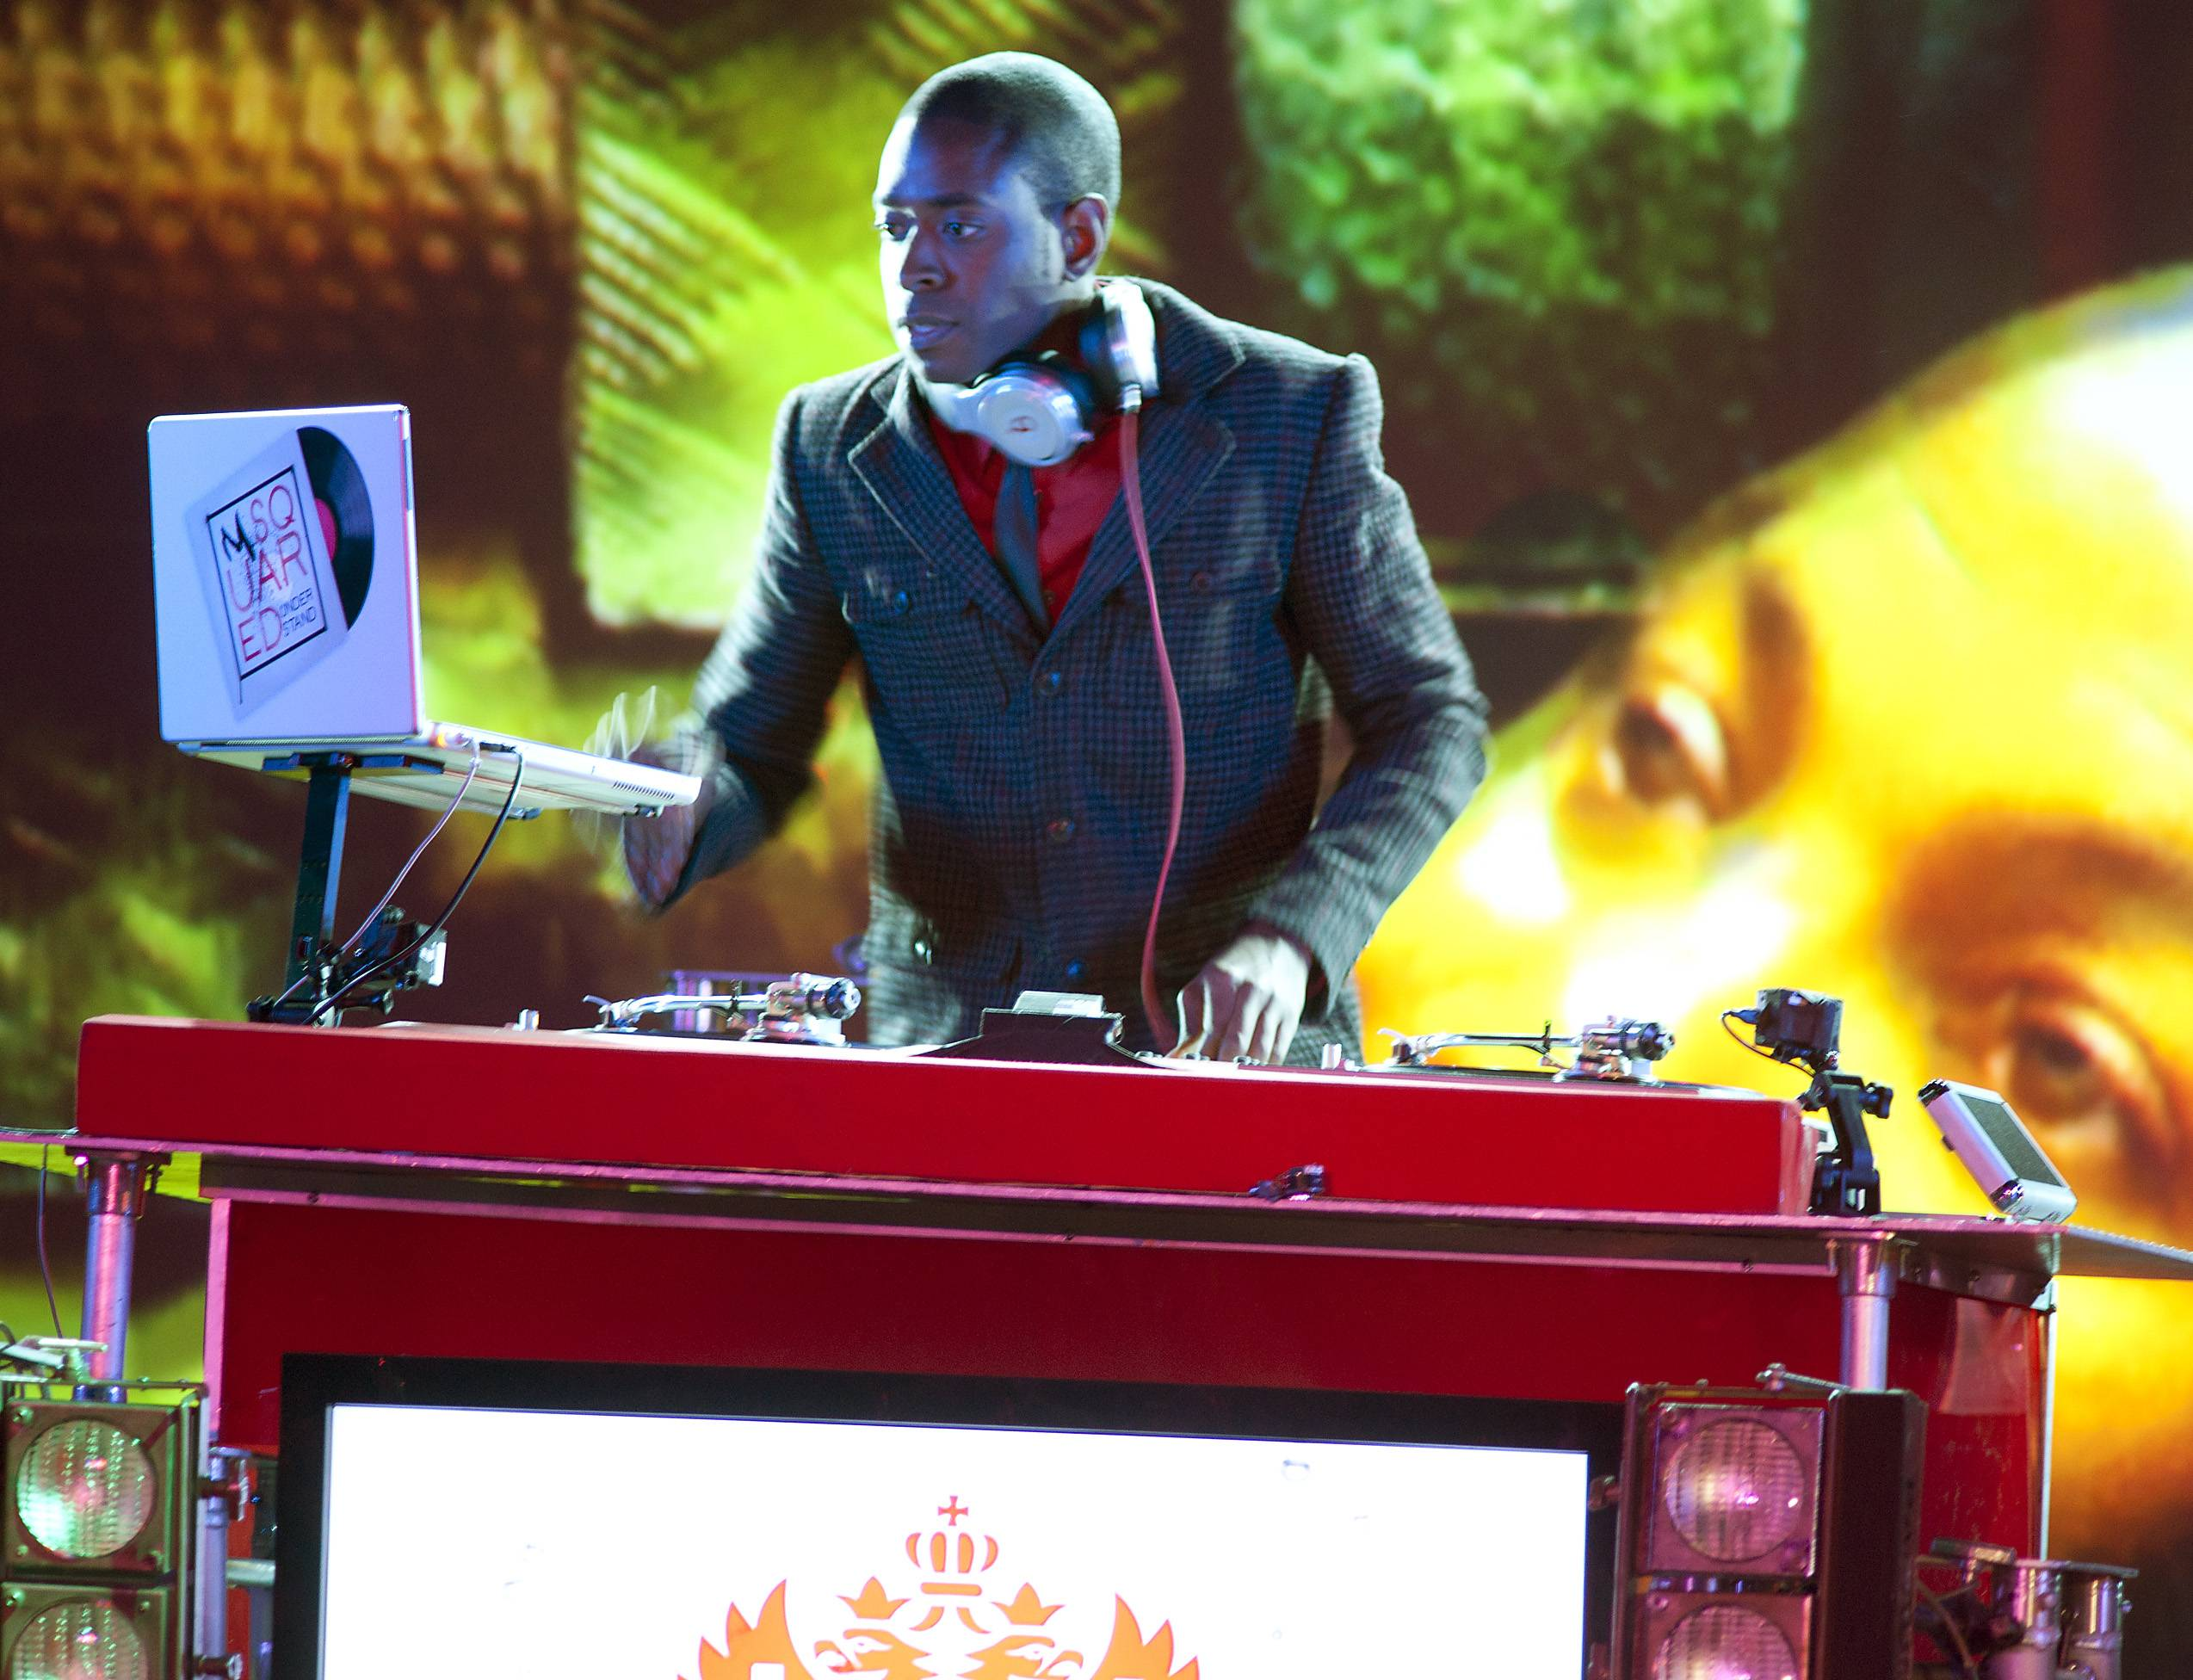 Rep Yo Set! - DJ M-Squared getting his serato ready for the final challenge. (Photo: Moses Mitchell/BET)